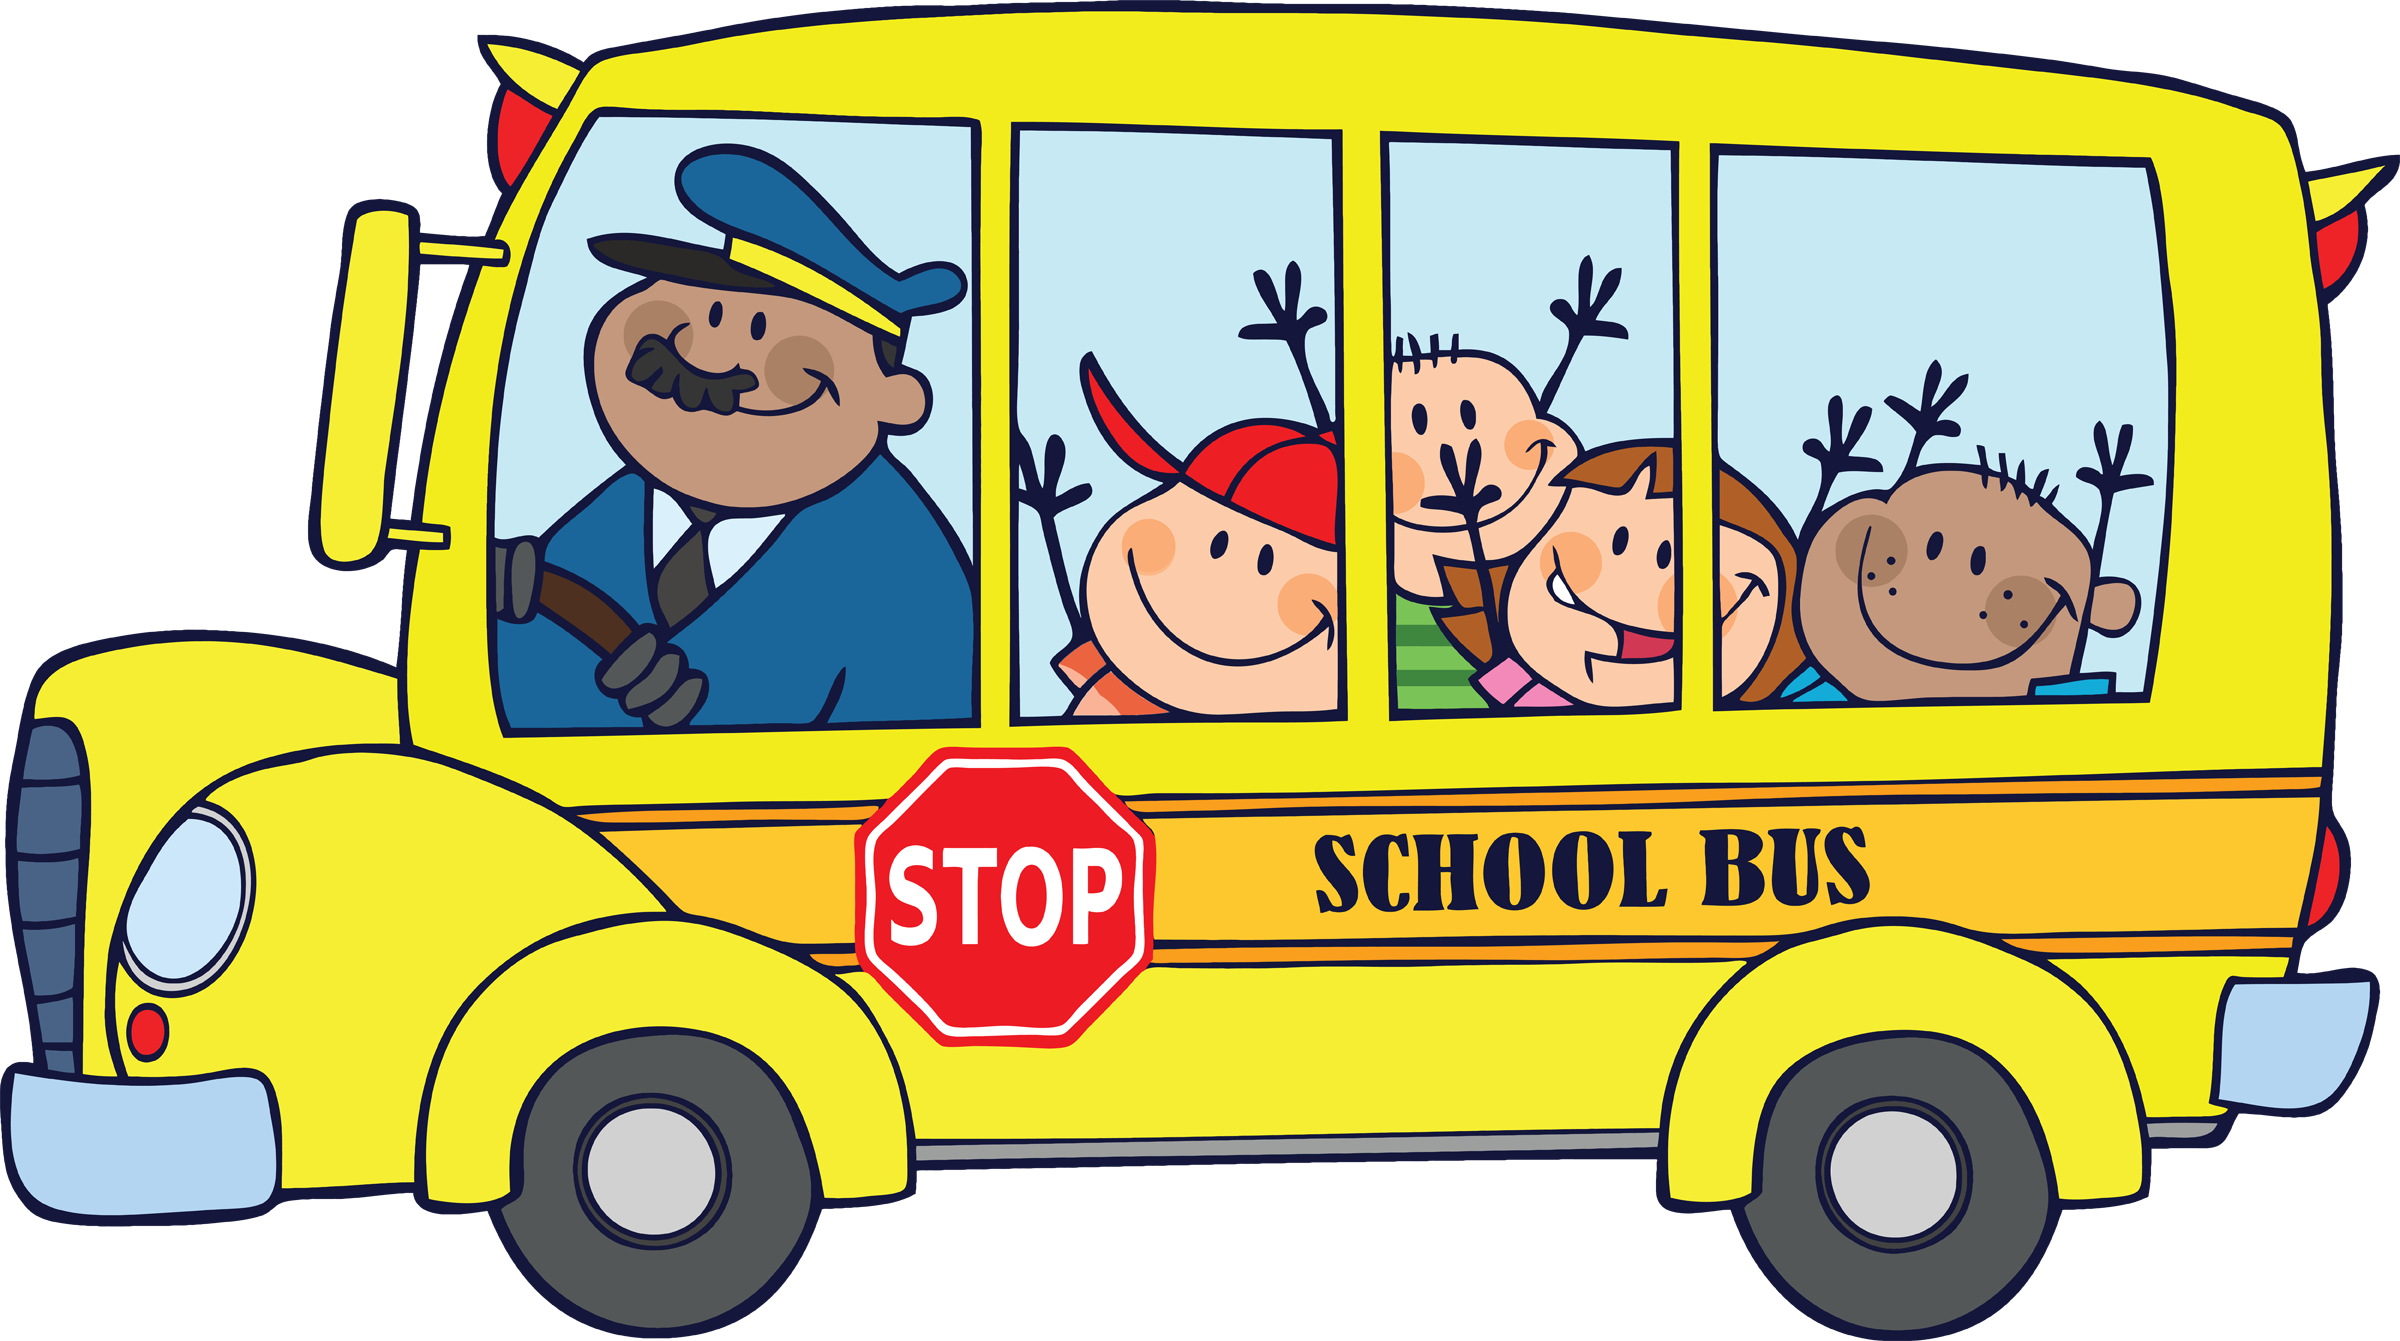 School arrival clipart royalty free library arriving to school clipart - Clipground royalty free library